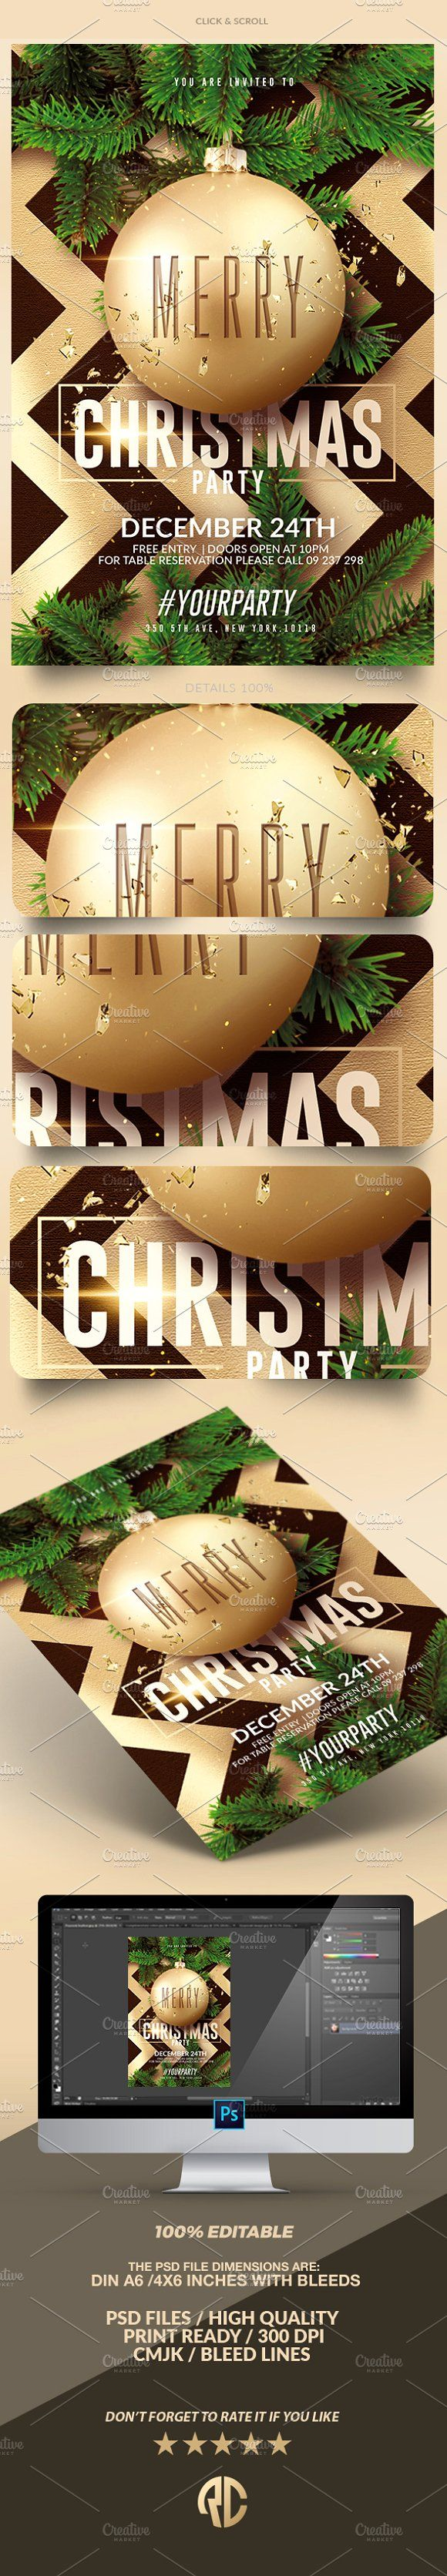 Need new Flyer Templates? Check out Christmas - Flyer Template by @romecreation on @CreativeMarket https://crmrkt.com/v17JM   #christmas #flyer #party #template